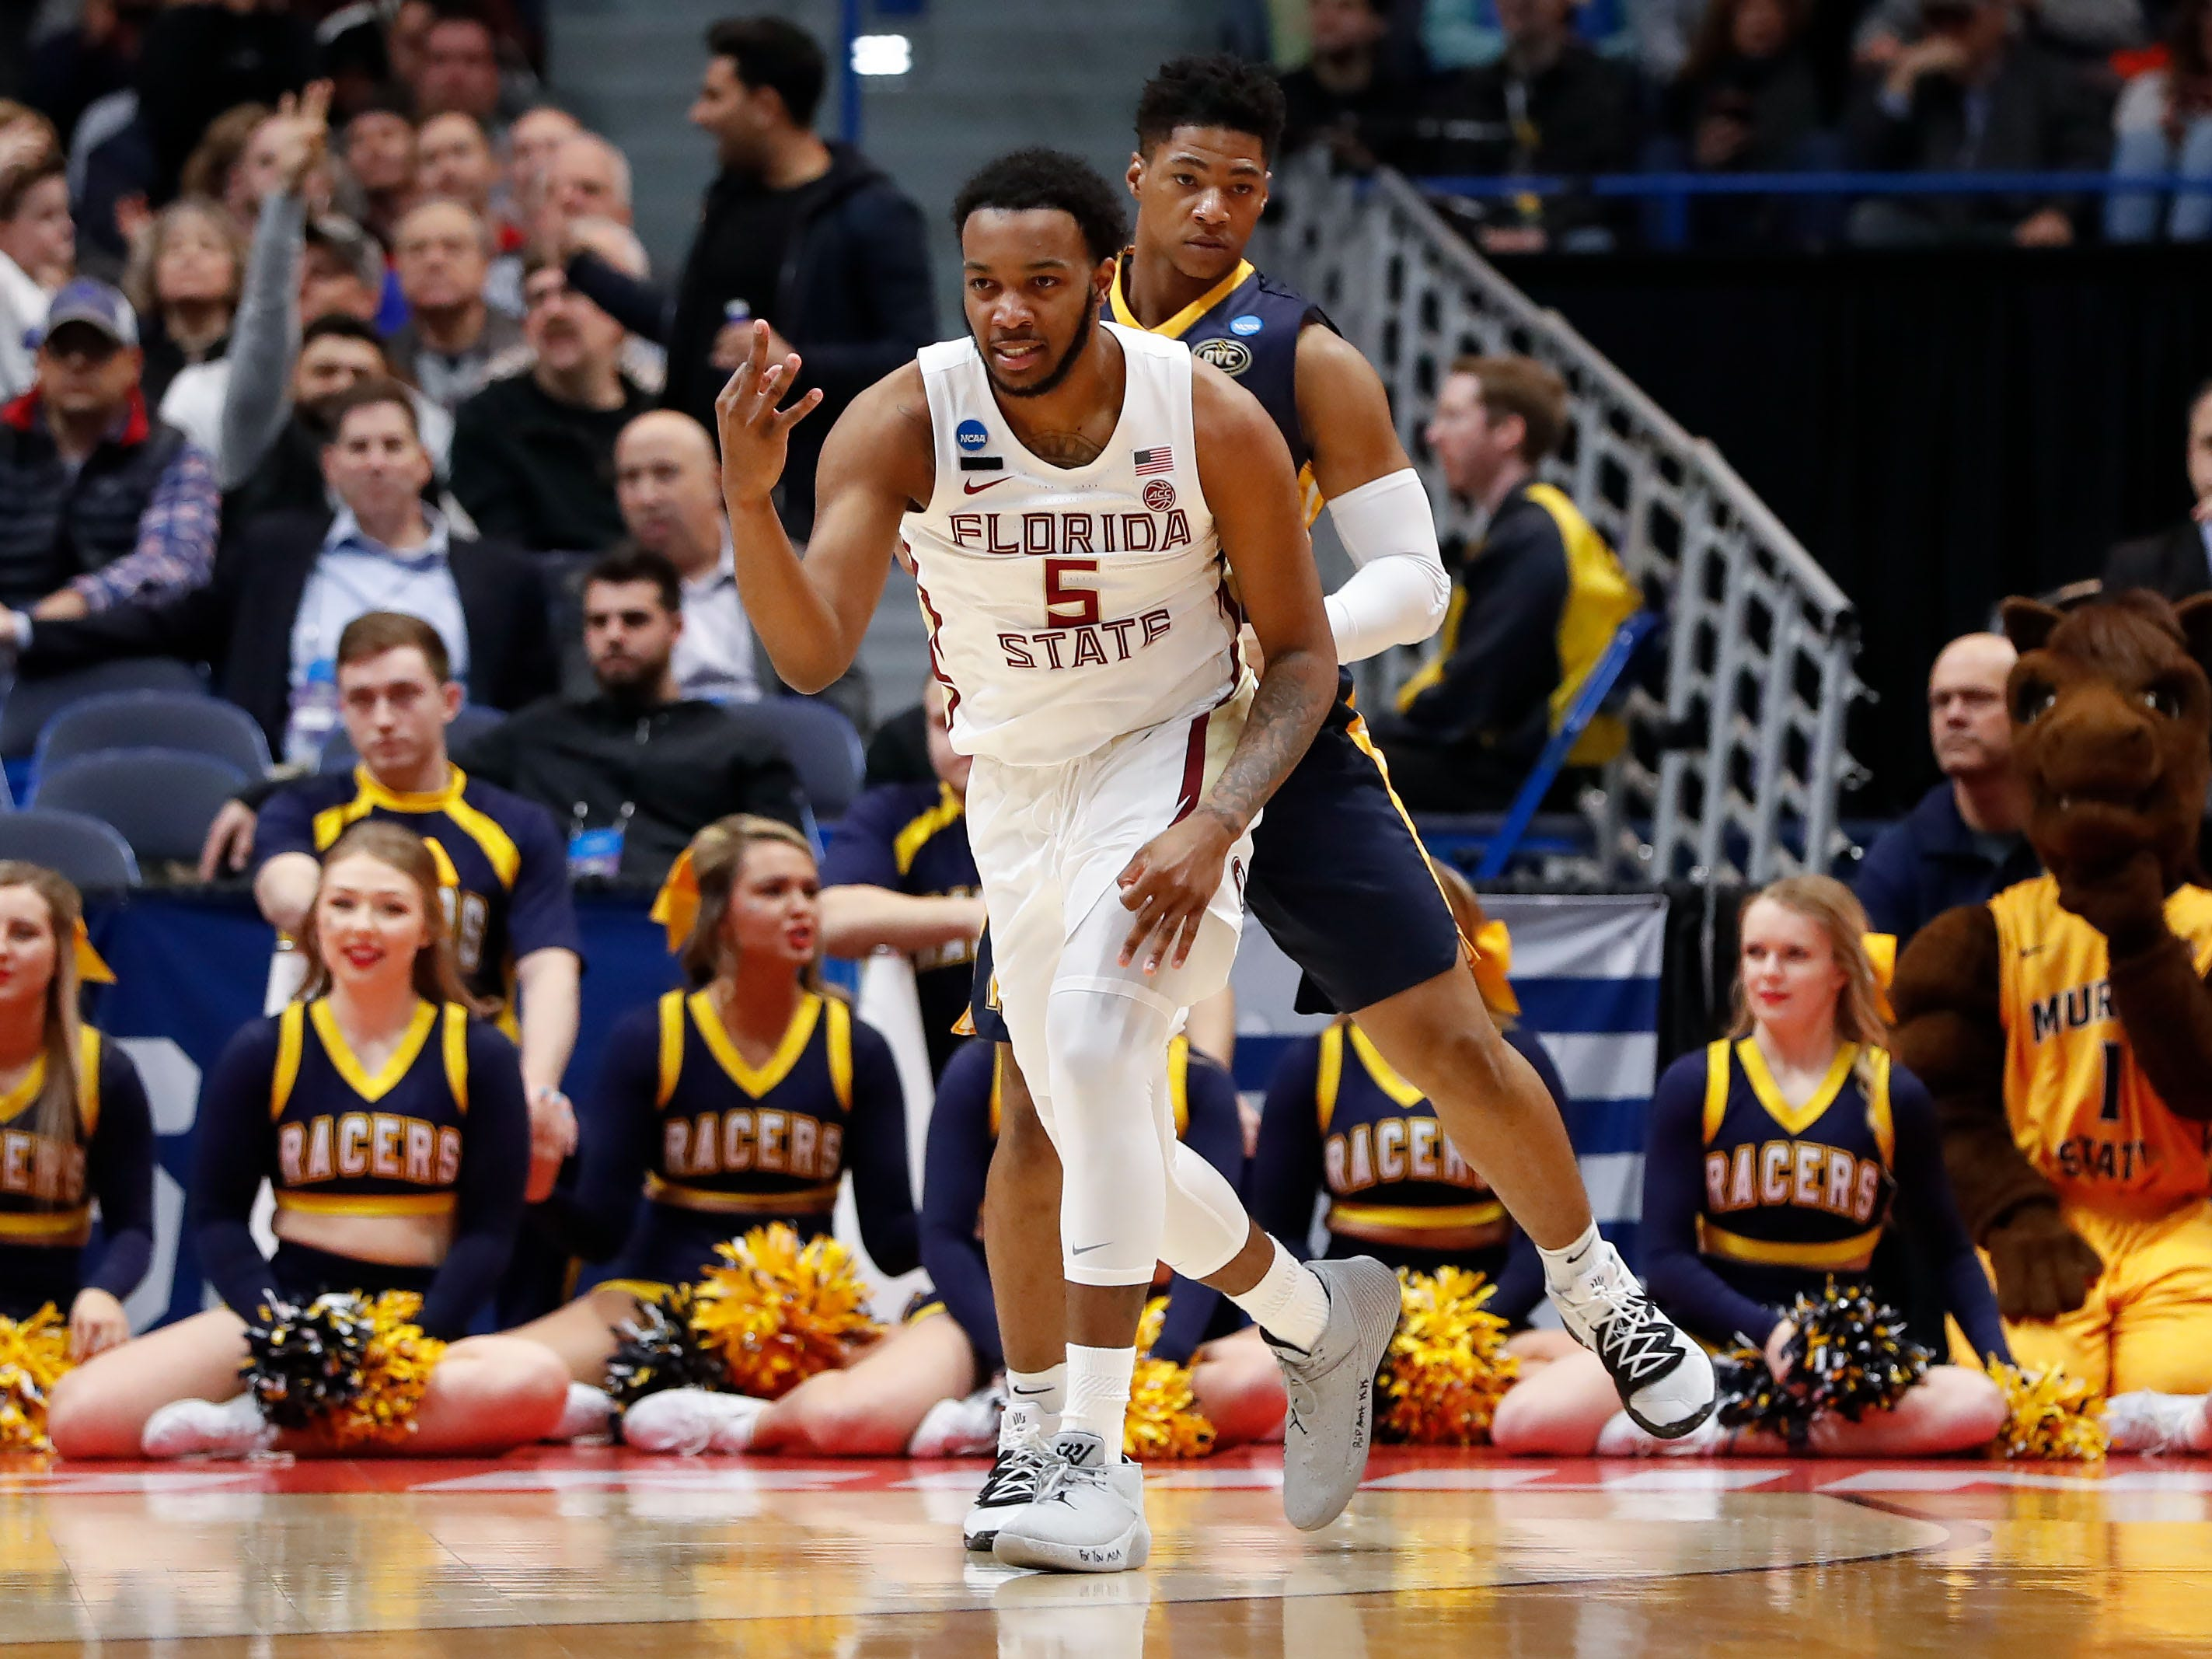 Mar 23, 2019; Hartford, CT, USA; Florida State Seminoles guard PJ Savoy (5) reacts after a score against the Murray State Racers during the first half of a game in the second round of the 2019 NCAA Tournament at XL Center. Mandatory Credit: David Butler II-USA TODAY Sports